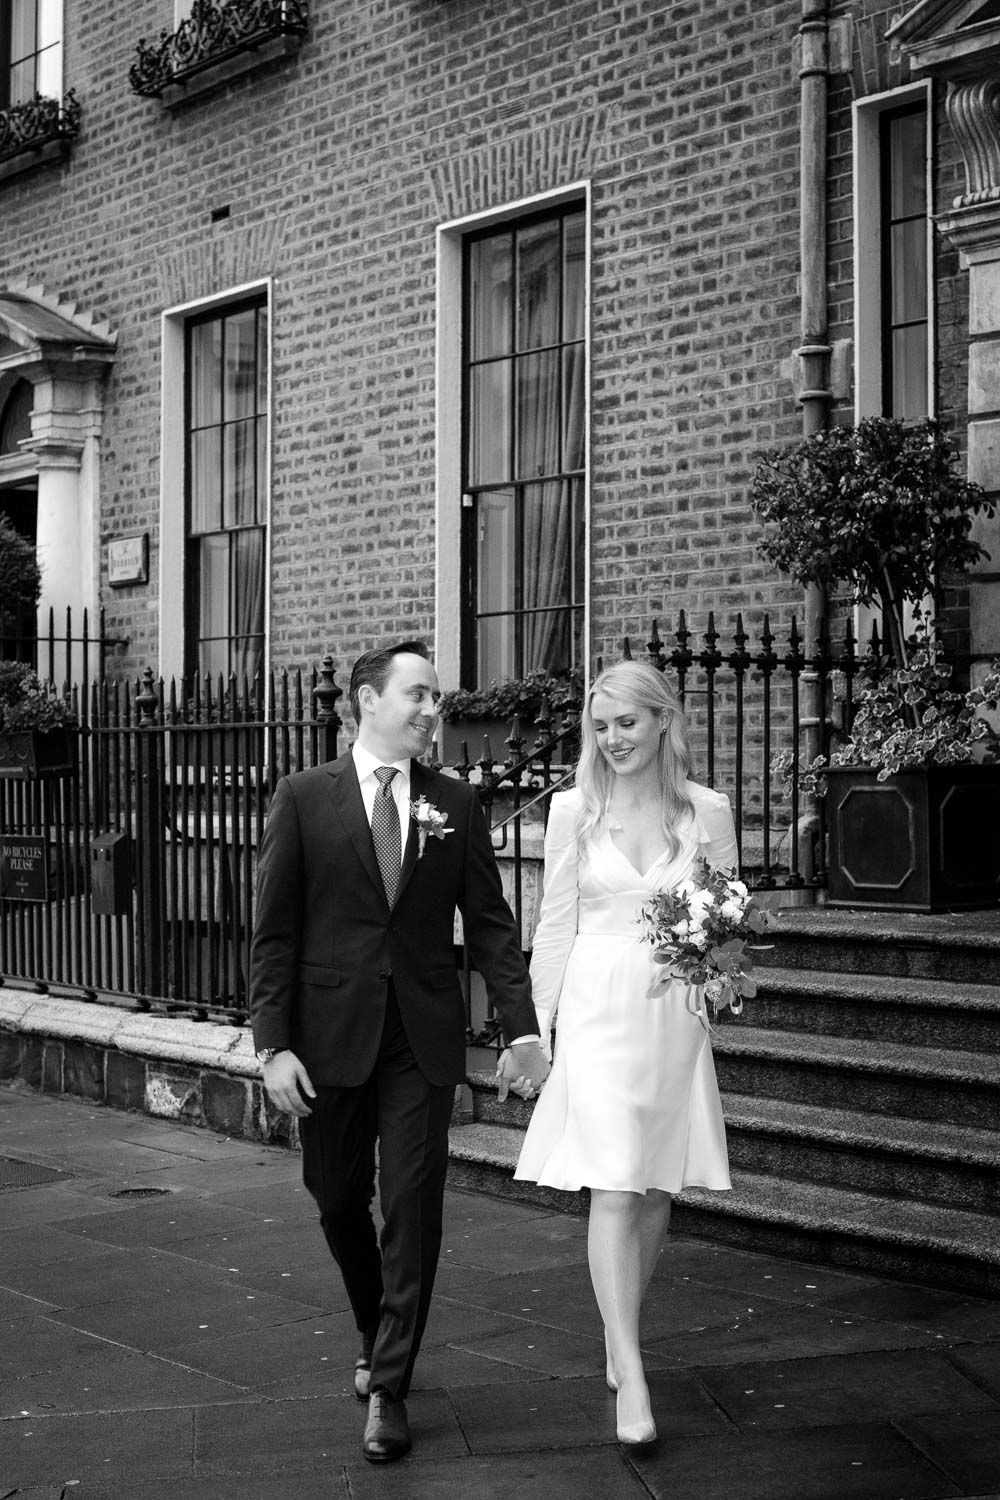 The bride and groom walk hand in hand along Merrion Row in Dublin during their Merrion Hotel wedding